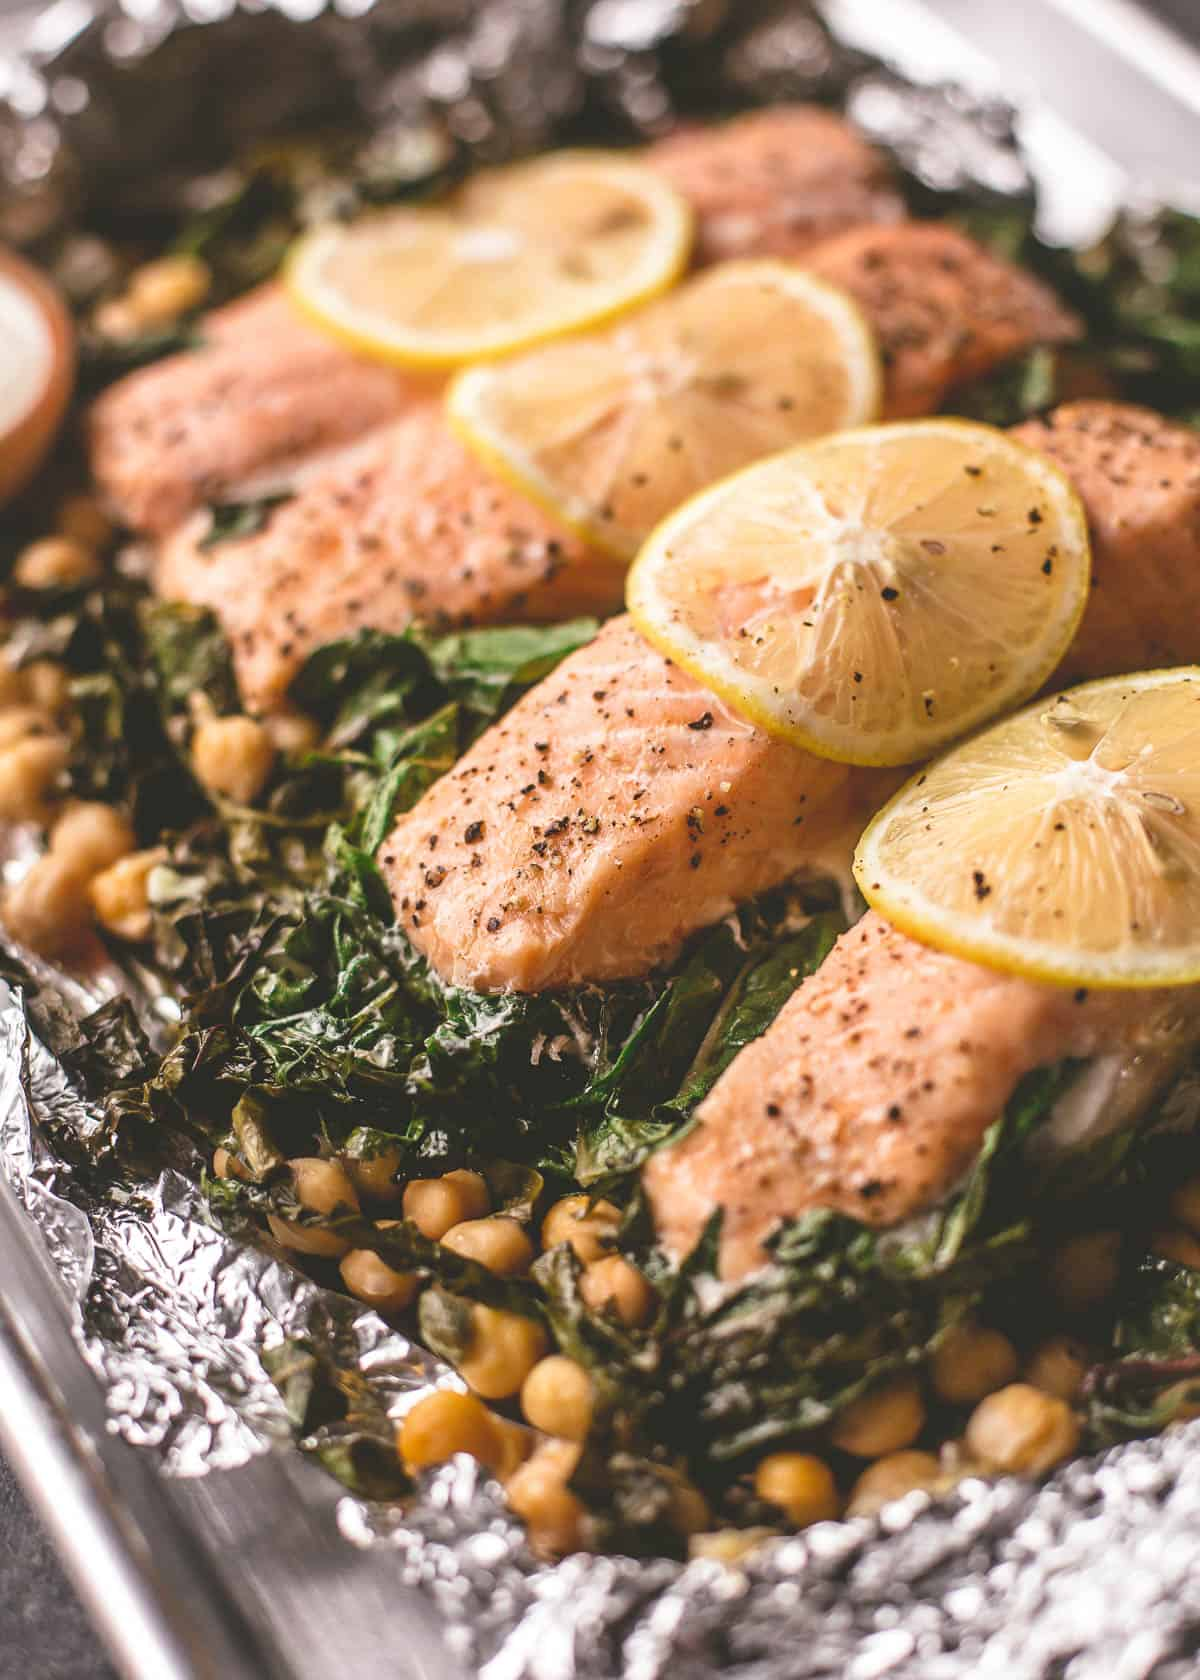 roasted salmon filets on a bed of greens and chickpeas in foil